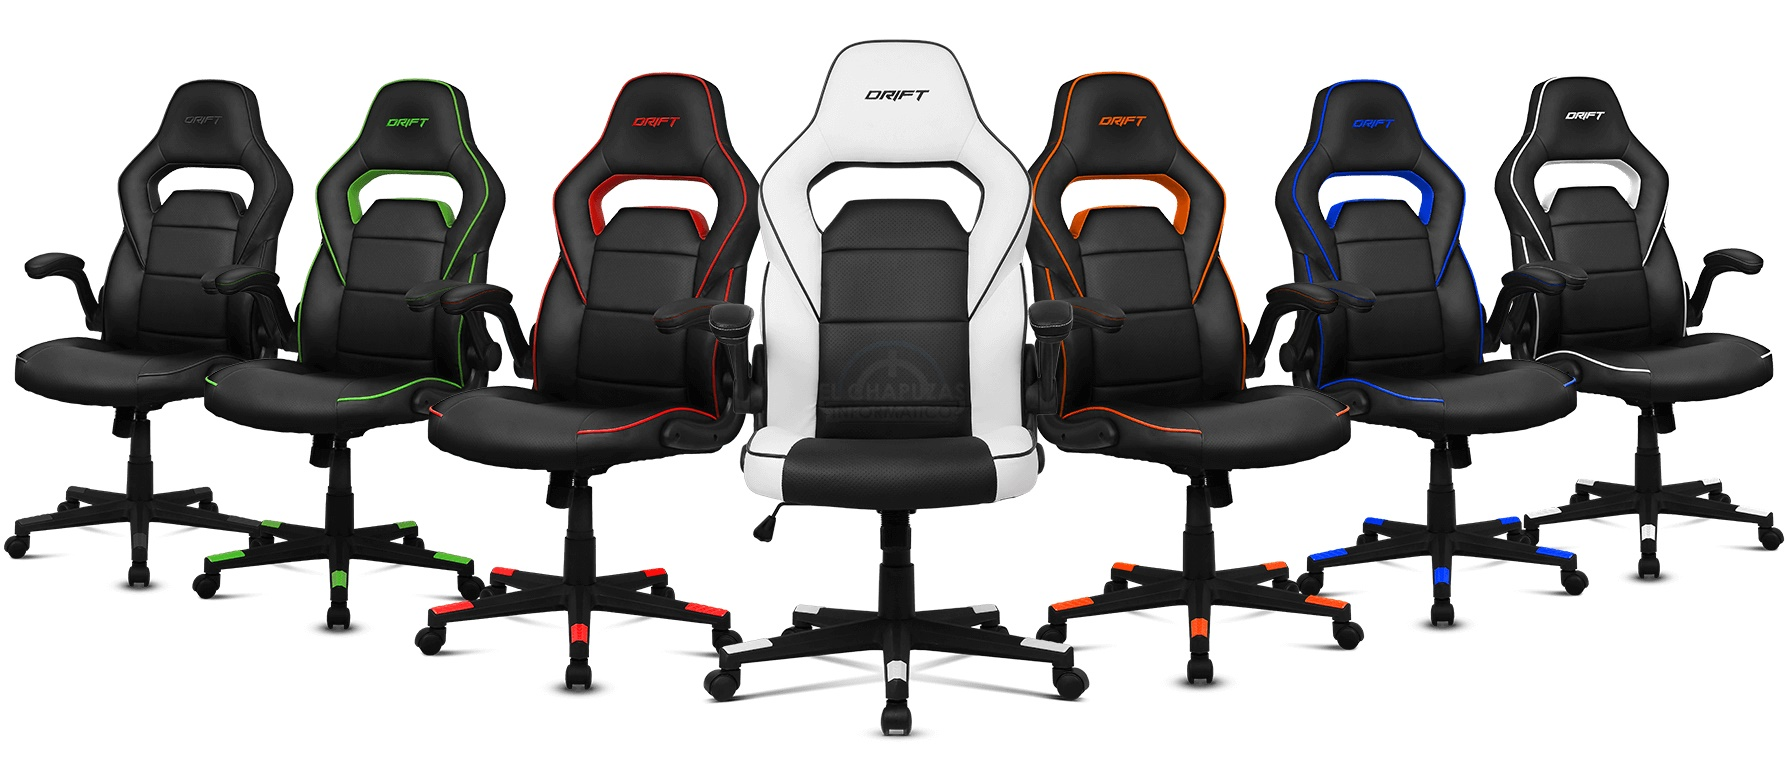 Drift dr75 silla gaming econ mica con acabado en polipiel for Silla gaming con altavoces